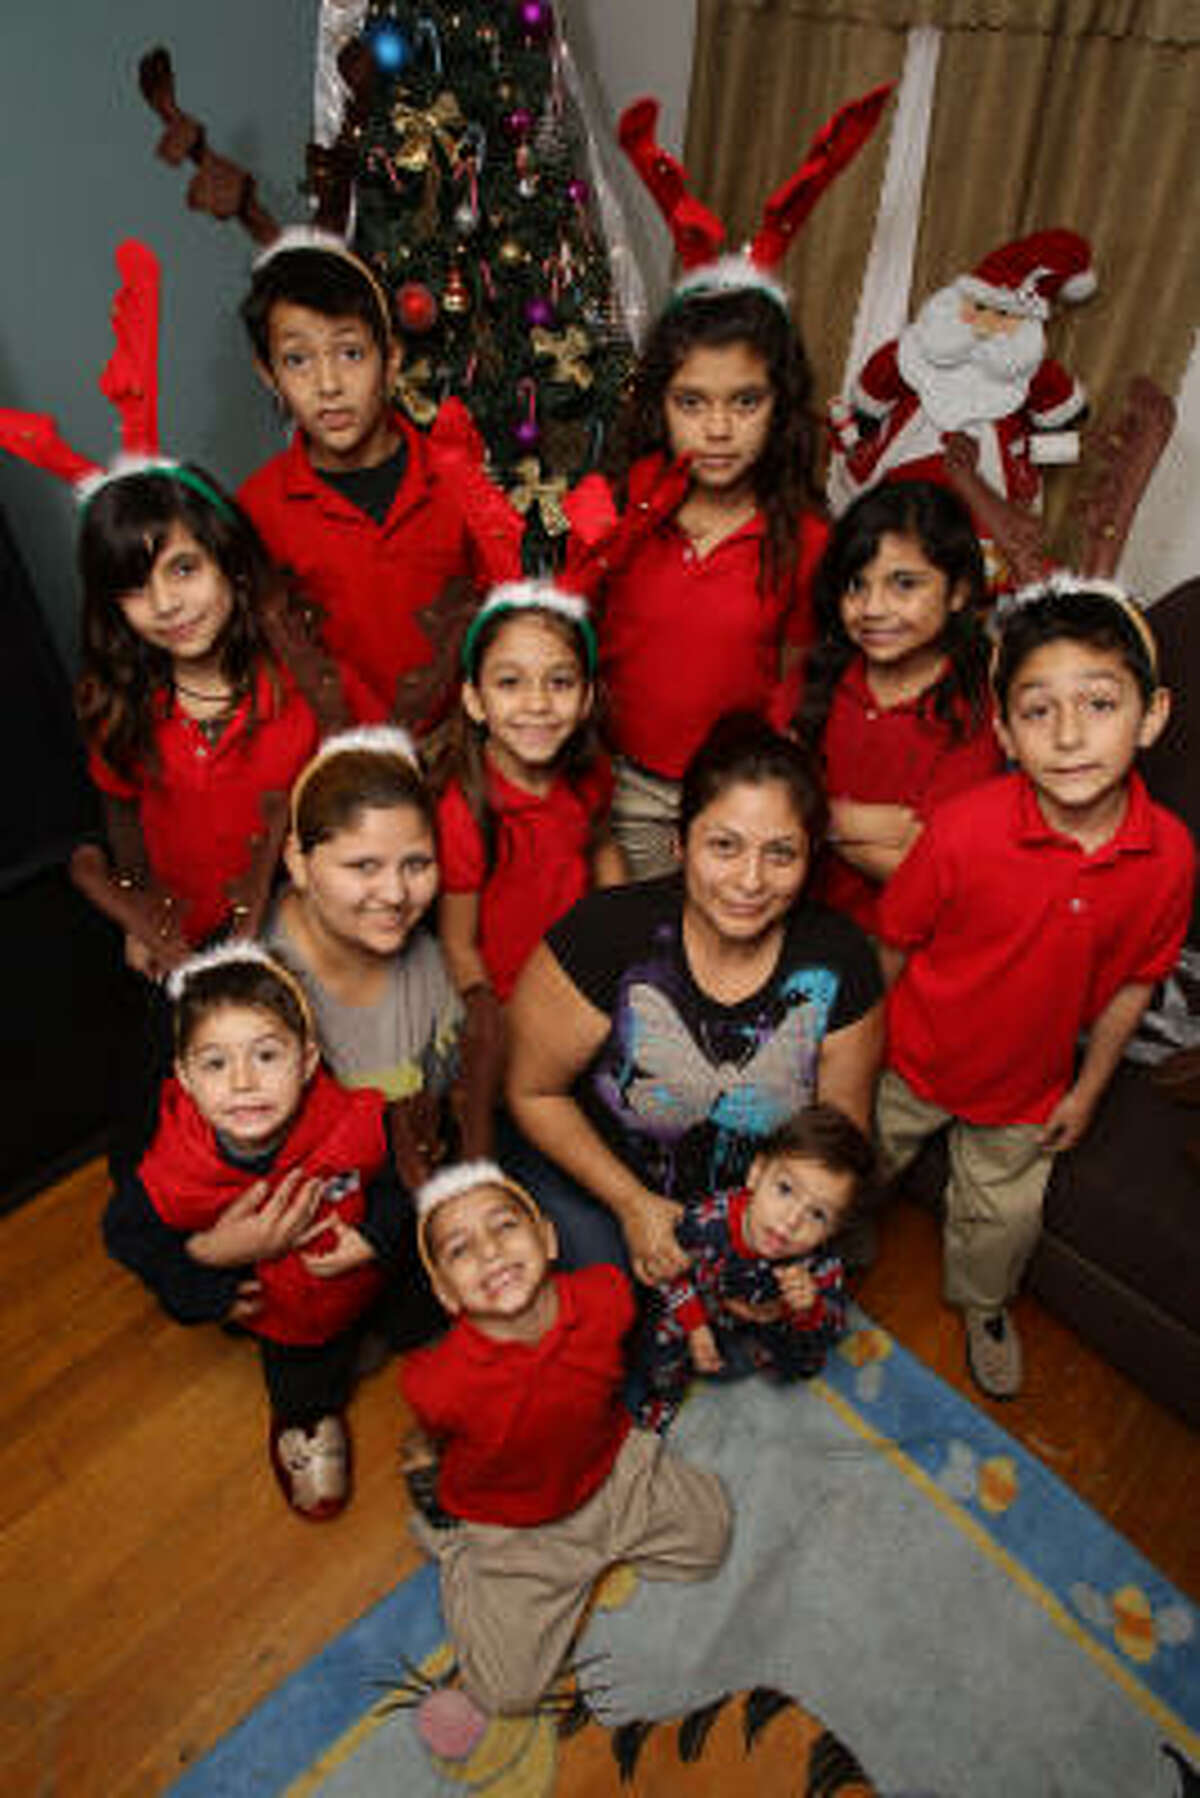 Bianca Cardenas, lower left, her five children and her brother, Aldo Perez, top left, recently moved in with her cousin, Xochitl Hernandez, lower right. The children include, clockwise from top, Josey Vasquez, 11; Maria Vasquez, 9; Angelo Mejia, 8; Leonardo Mejia, 1; Victor Mejia, 5; Alex Mejia, 2; Nayla Mejia, 7; and Maria Vasquez, 9.